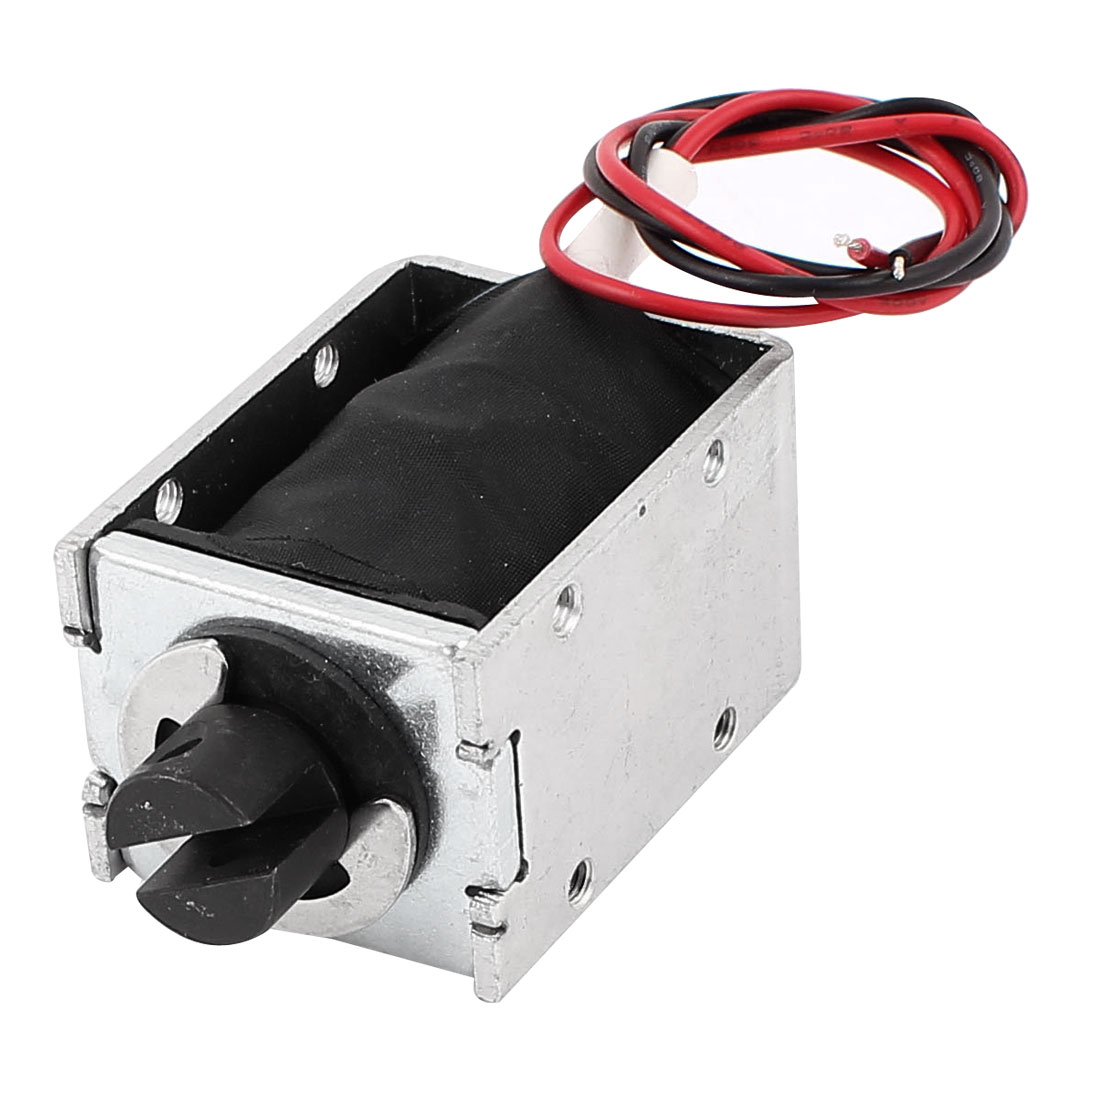 DC 24V 15mm 200g Pull Type Open Frame Solenoid Electromagnet Electric Magnet Lifting